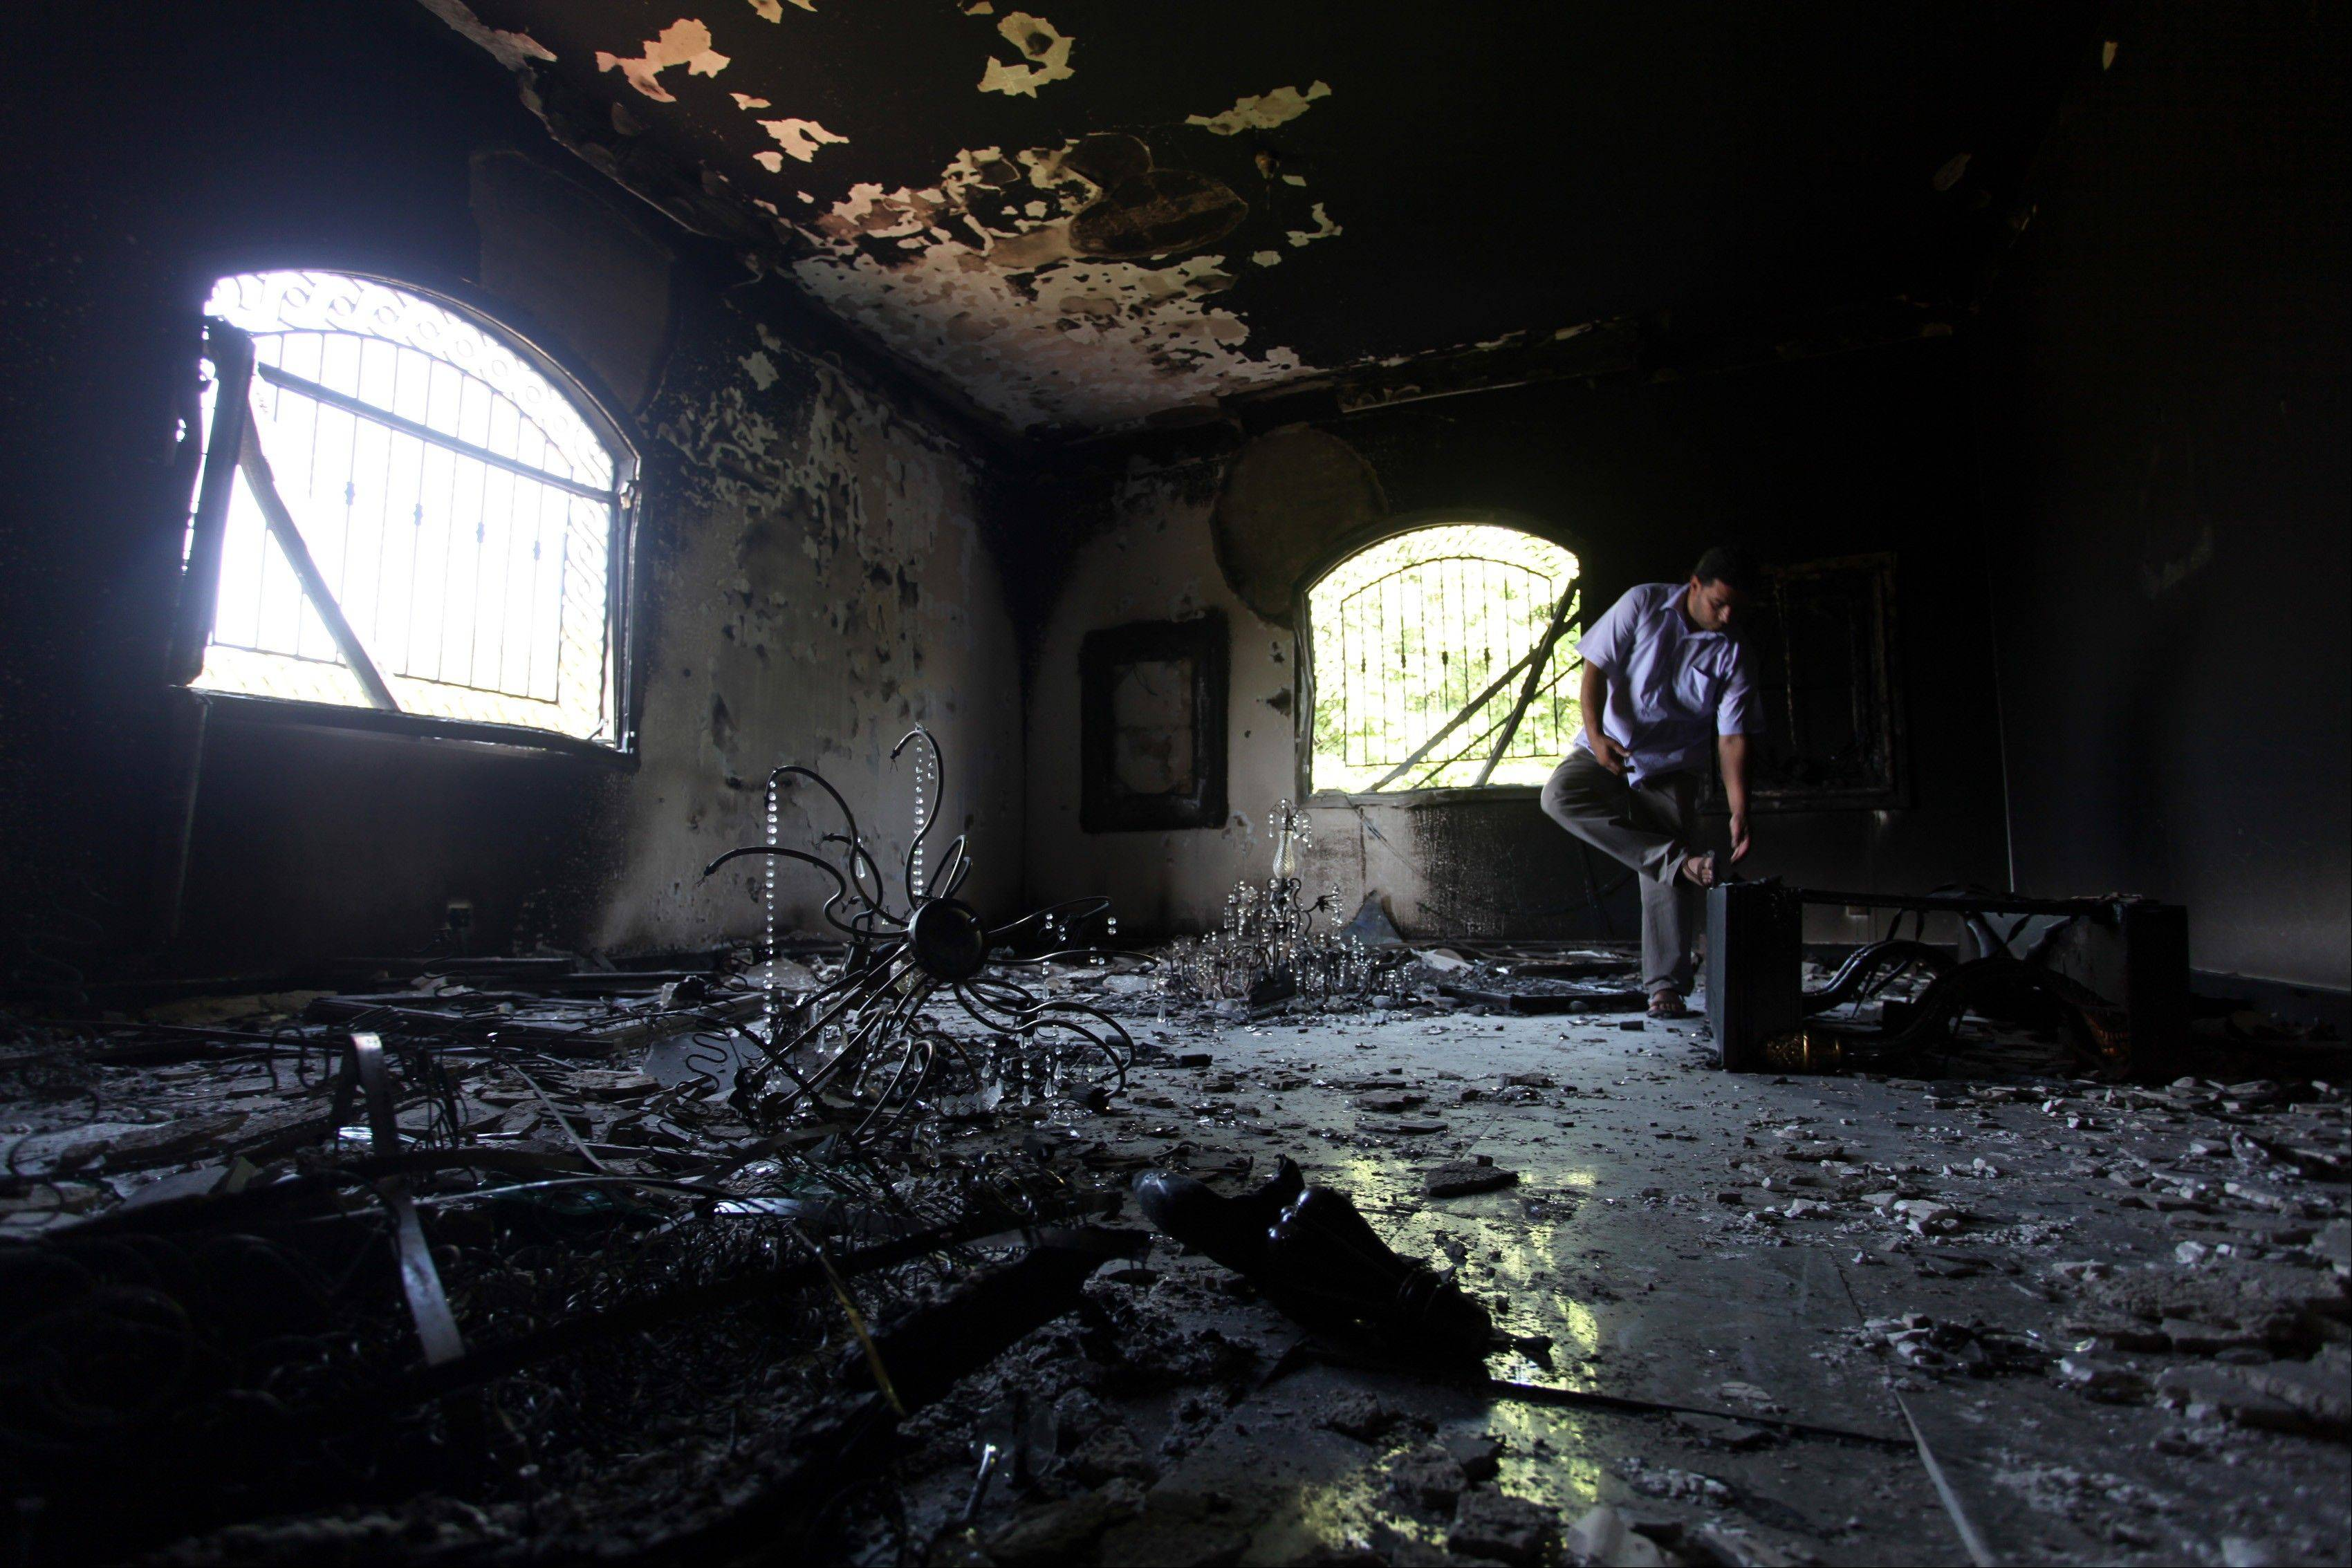 A Libyan man investigates the inside of the U.S. Consulate, after an attack that killed four Americans, including Ambassador Chris Stevens on the night of Sept. 11, 2012, in Benghazi, Libya. The State Department on Tuesday said it never concluded that the consulate attack in Libya stemmed from protests over an American-made video ridiculing Islam, raising further questions about why the Obama administration used that explanation for more than a week after assailants killed the U.S. ambassador and three other Americans.